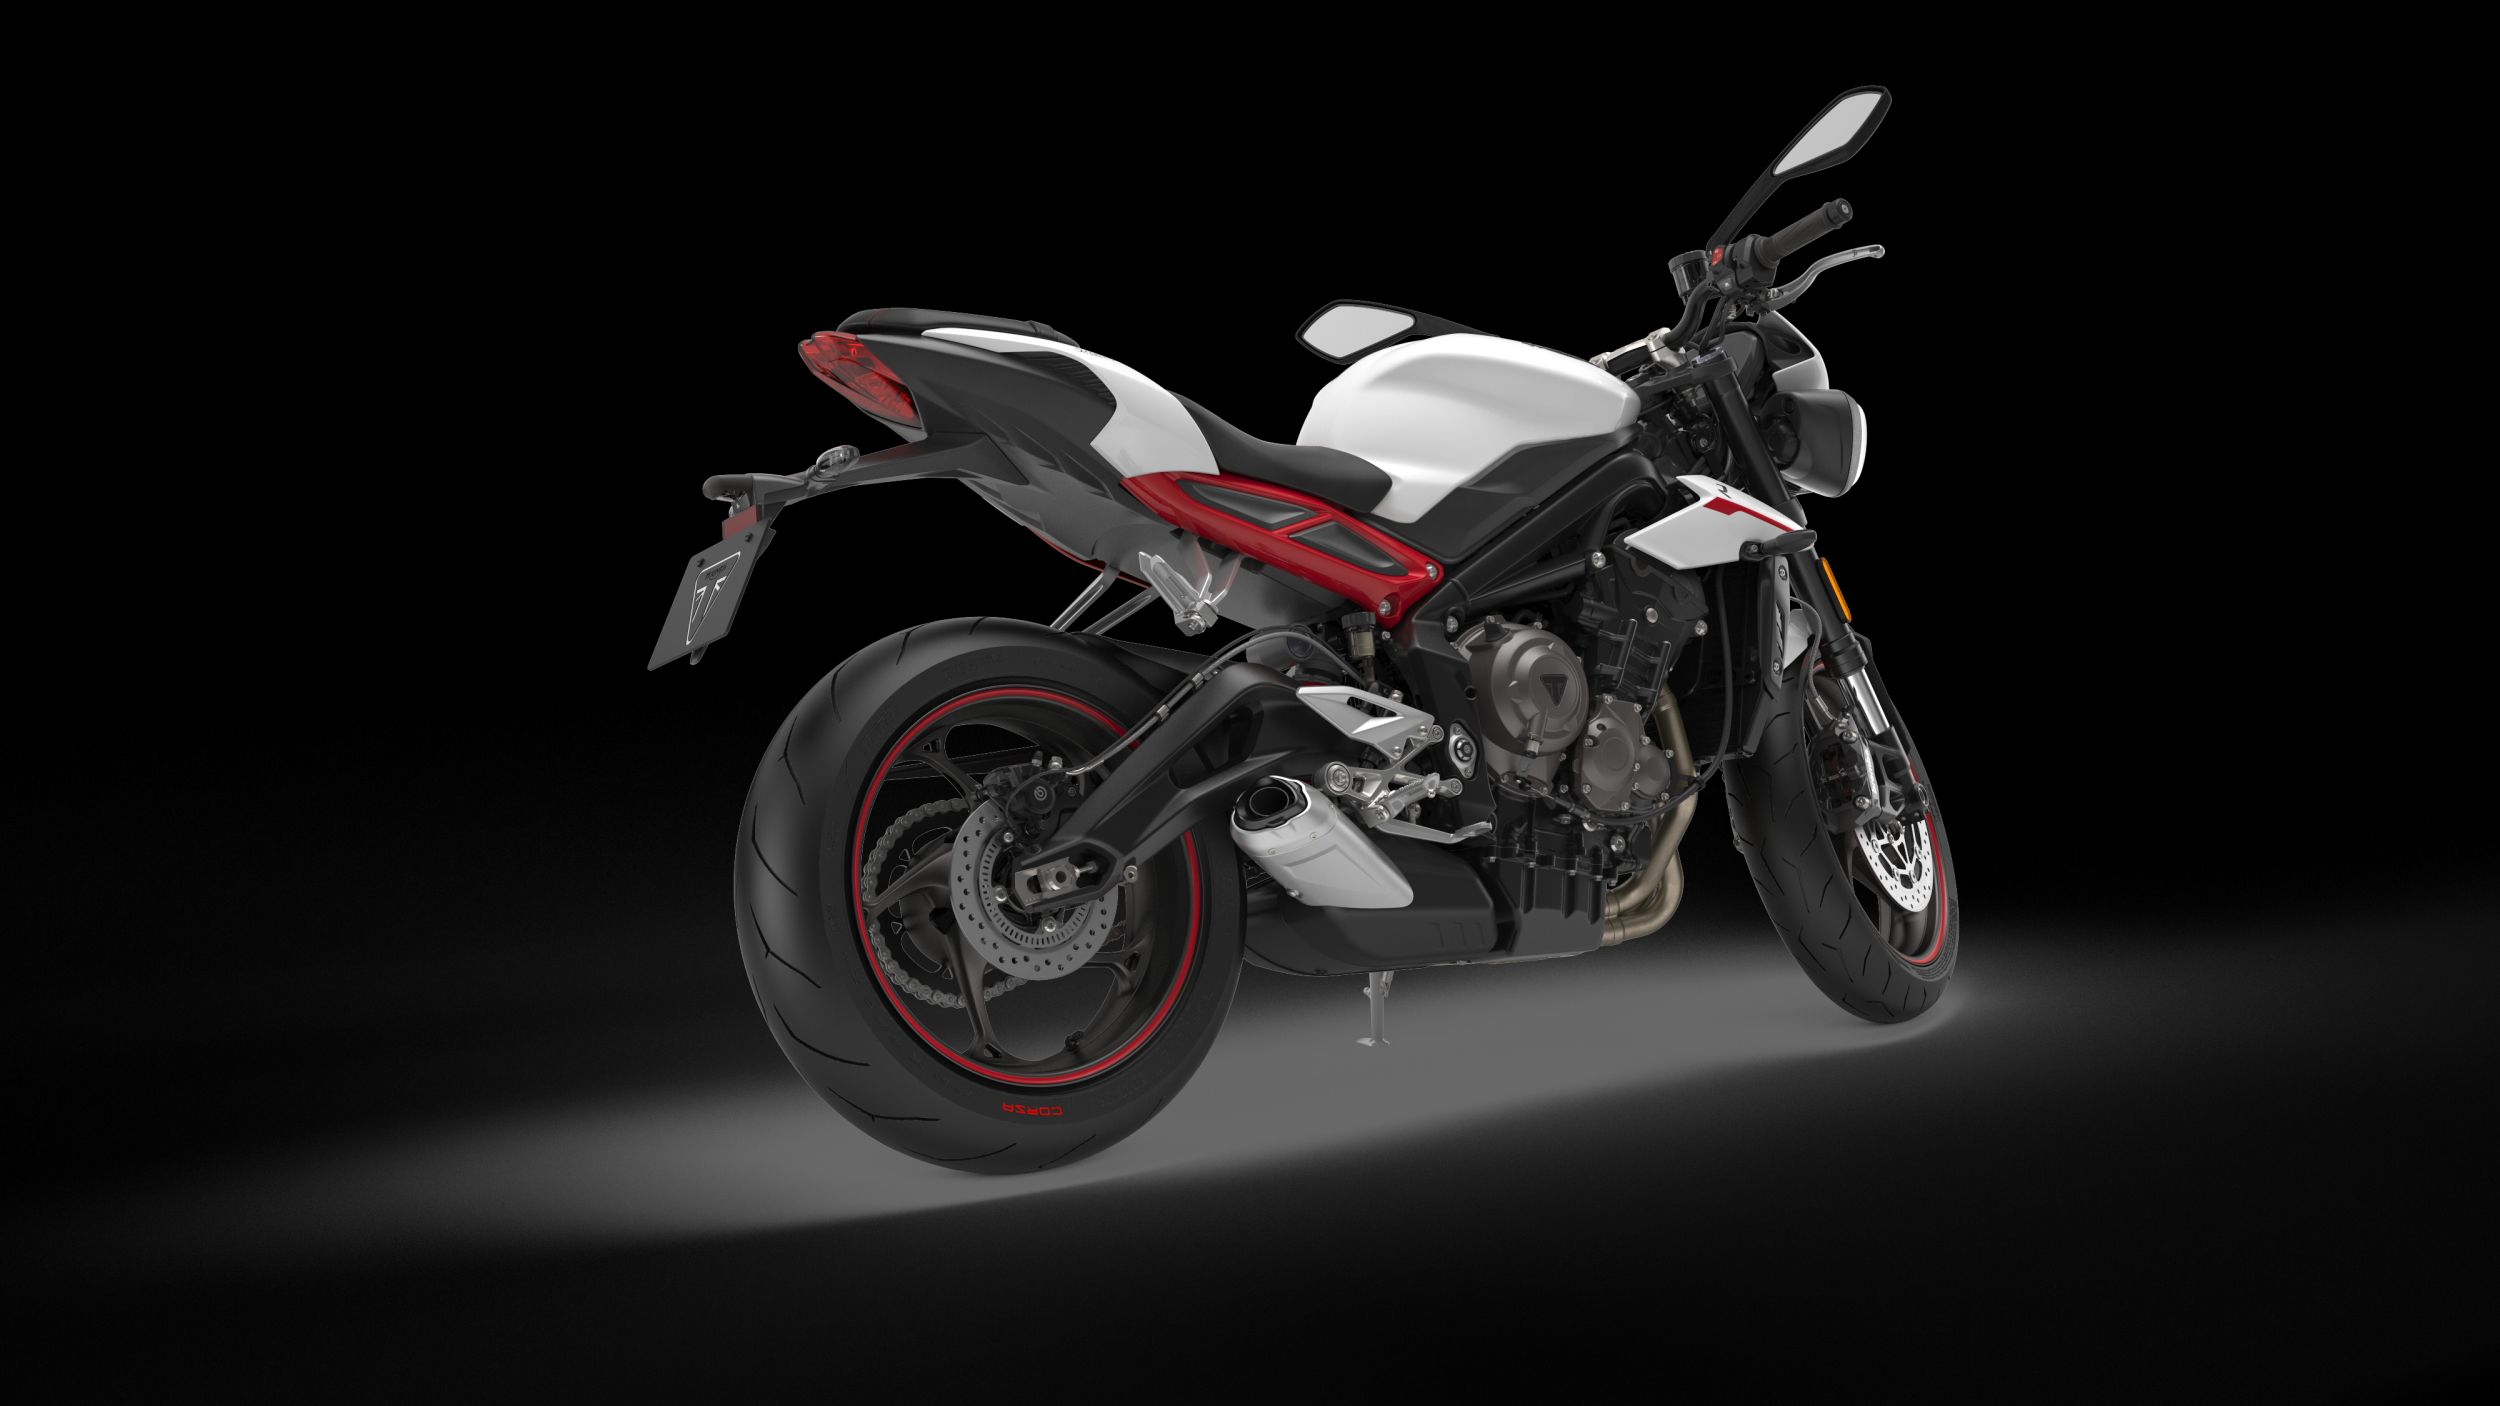 triumph street triple r all technical data of the model street triple r from triumph. Black Bedroom Furniture Sets. Home Design Ideas